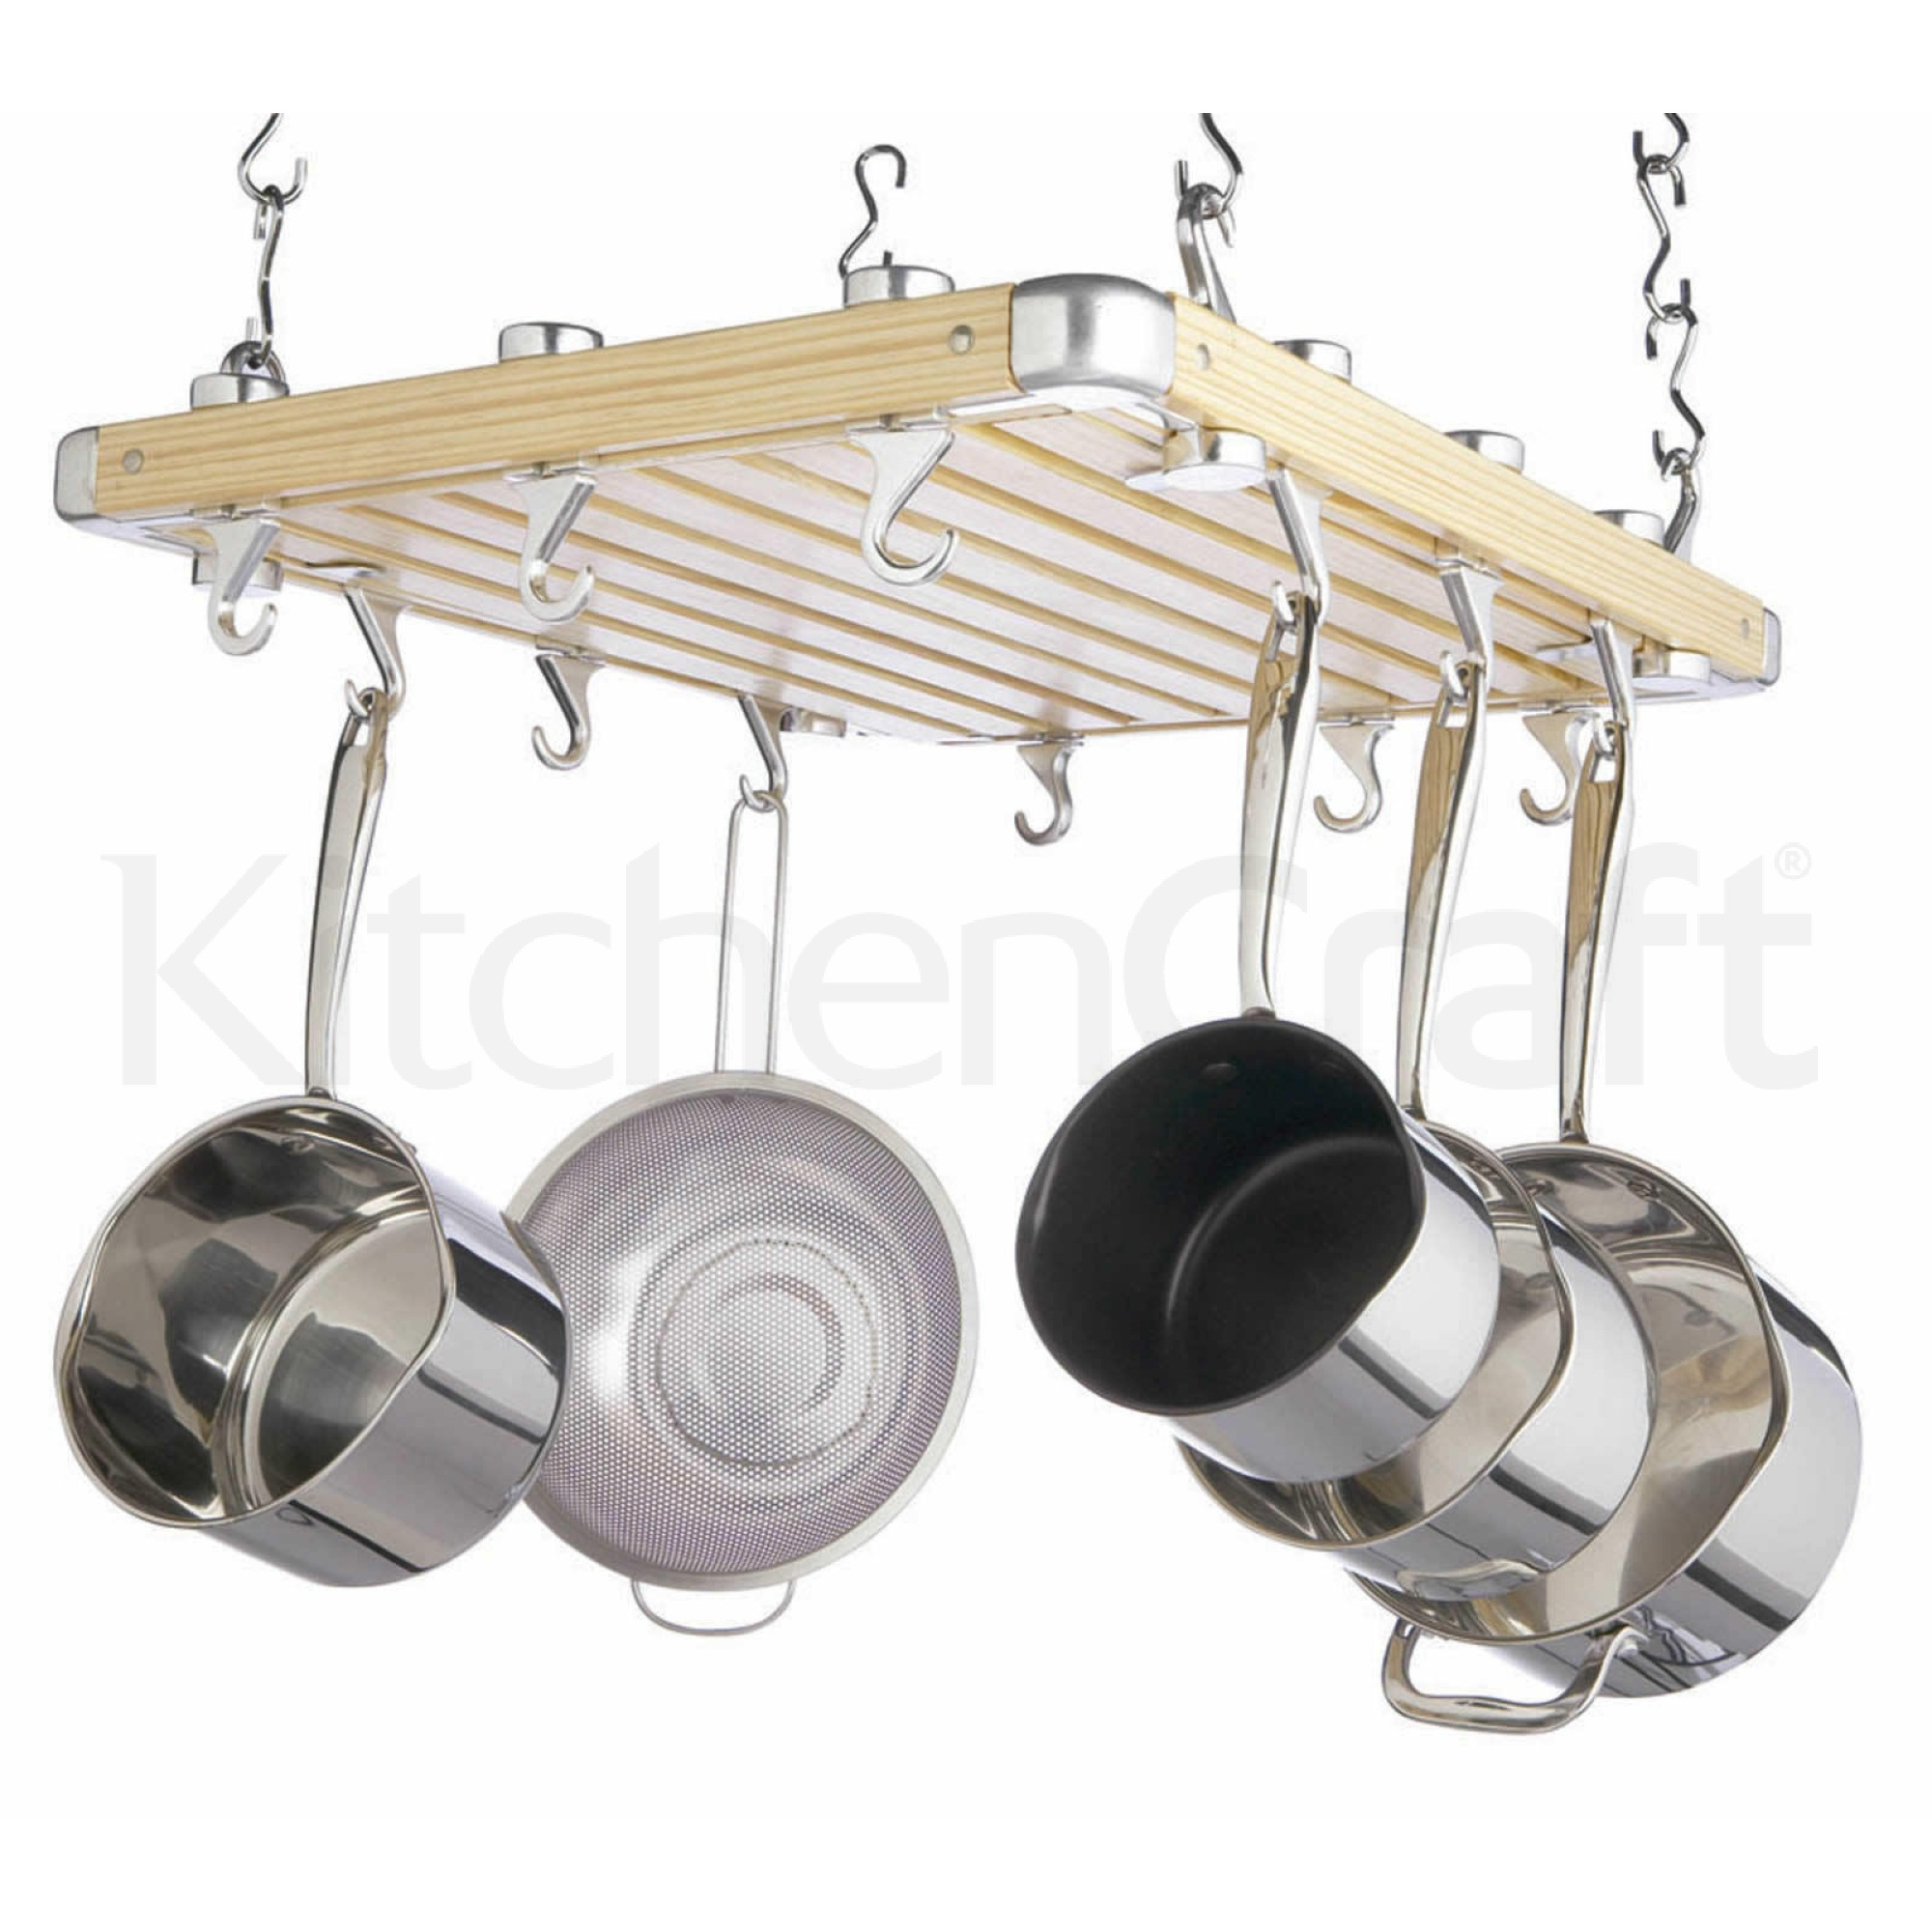 kitchen incredible pict steel pan hanger sasg with utensil standing hanging mounted islands holder rackisland unique stainless pots shelf hooks suspended styles and island rack lighting lights lighted full of utility trend pans size pot lowes accessories best wall storage